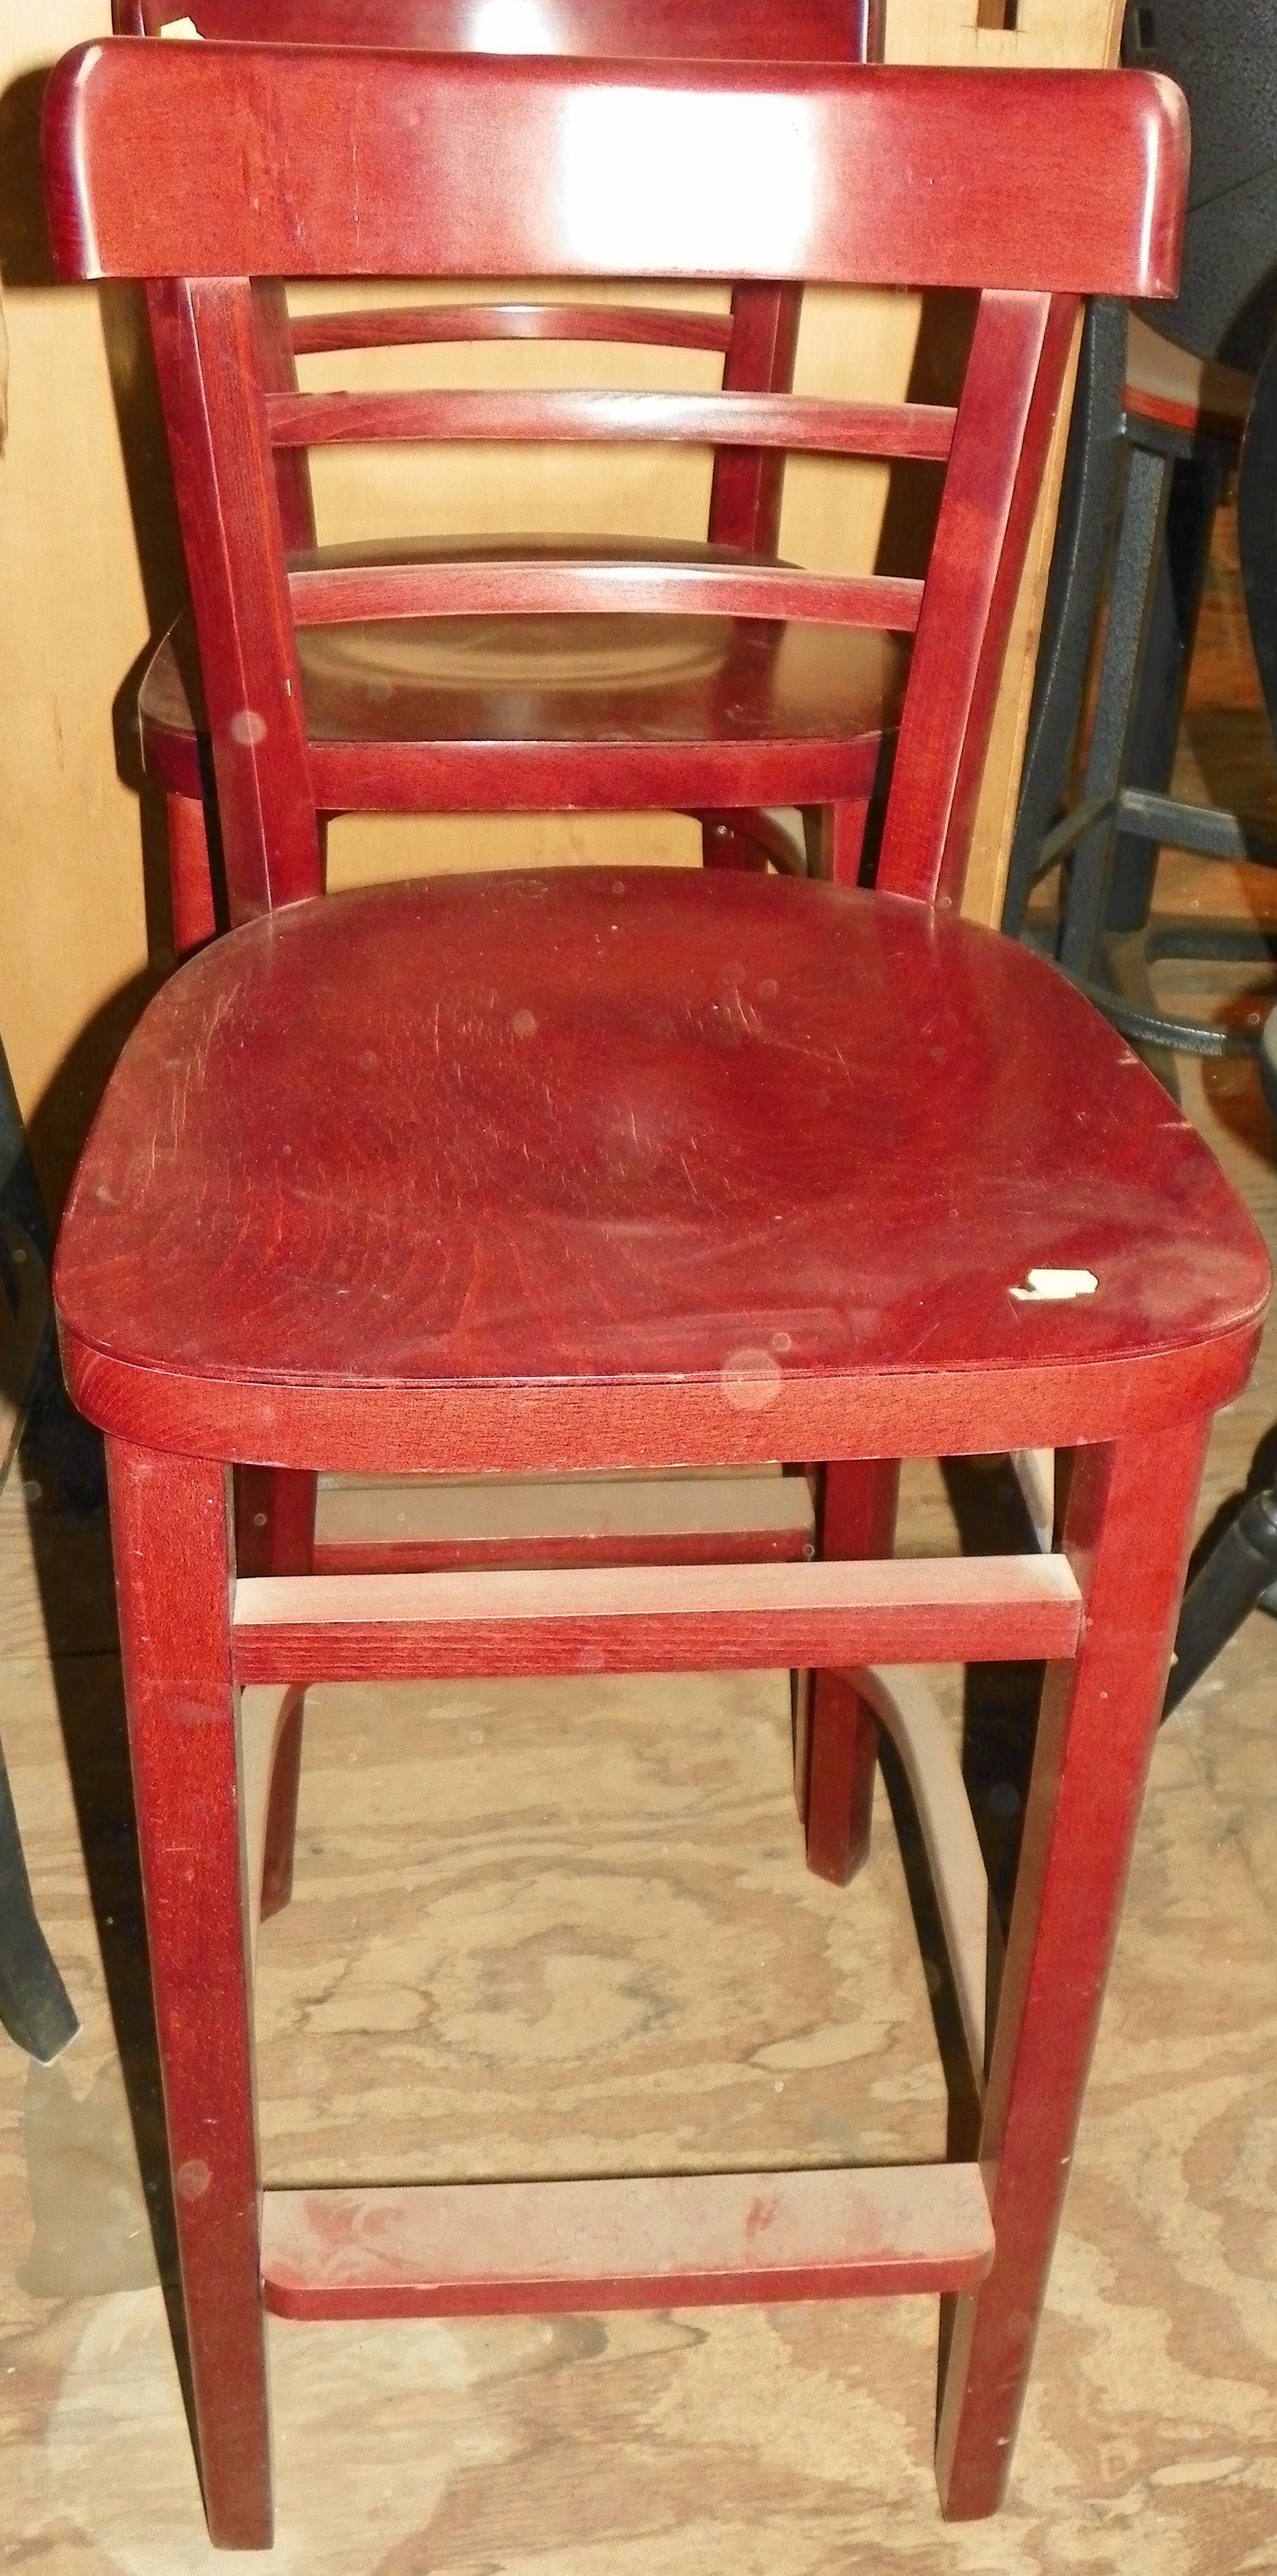 Swell Used 30 Wood Stool Onthecornerstone Fun Painted Chair Ideas Images Onthecornerstoneorg